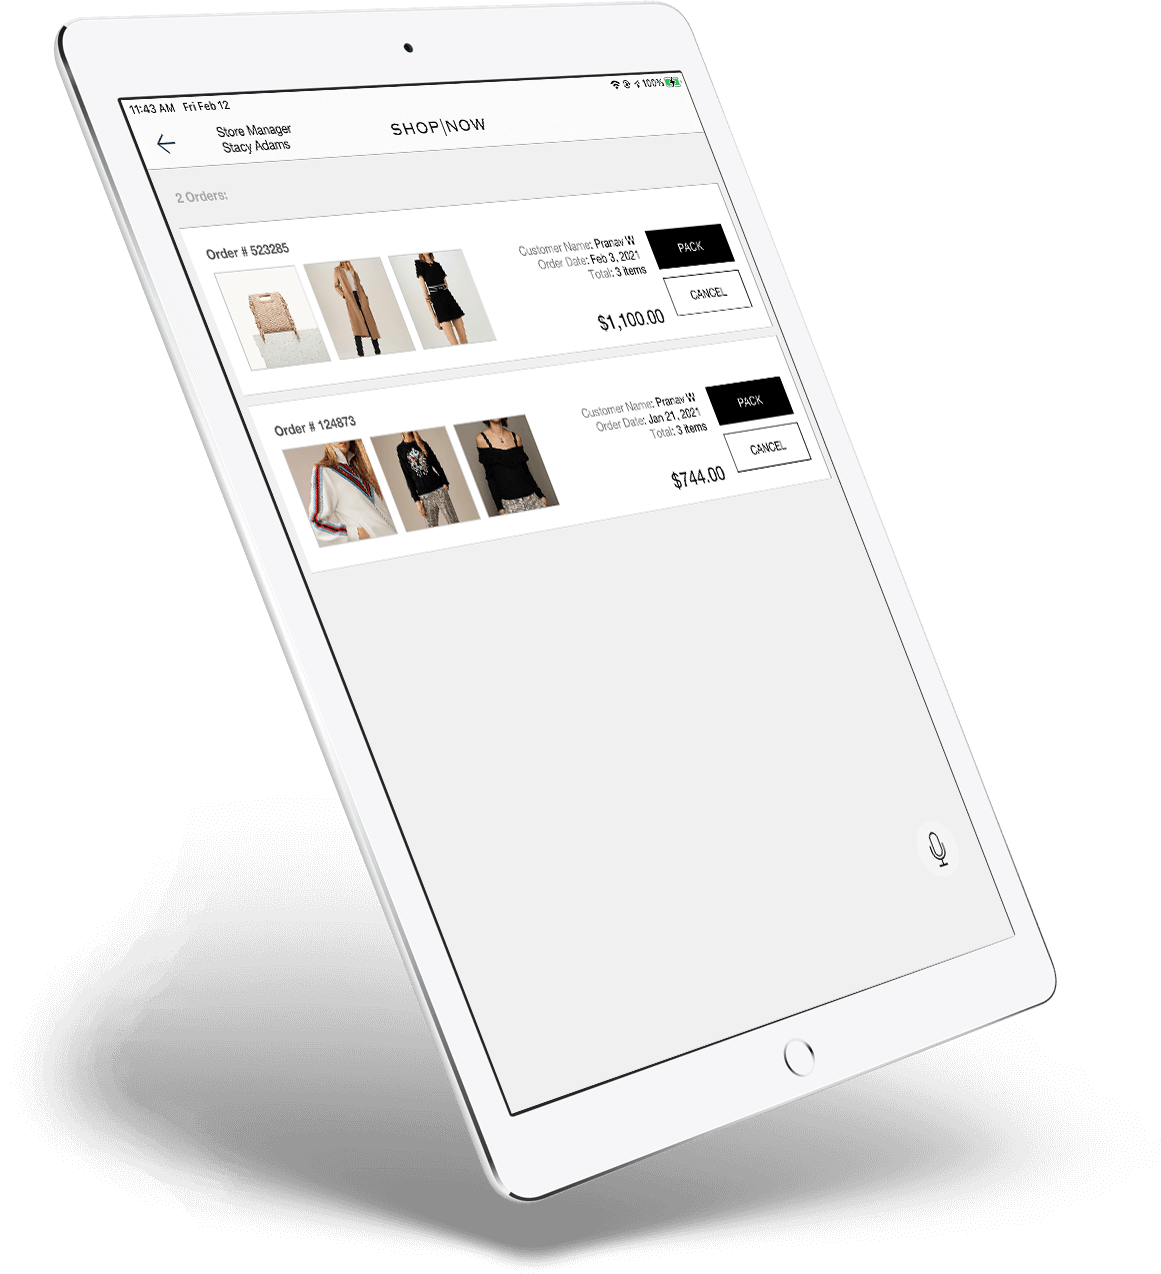 Cole Haan Native Mobile App - Product Detail Page with ApplePay - App Powered By PredictSpring